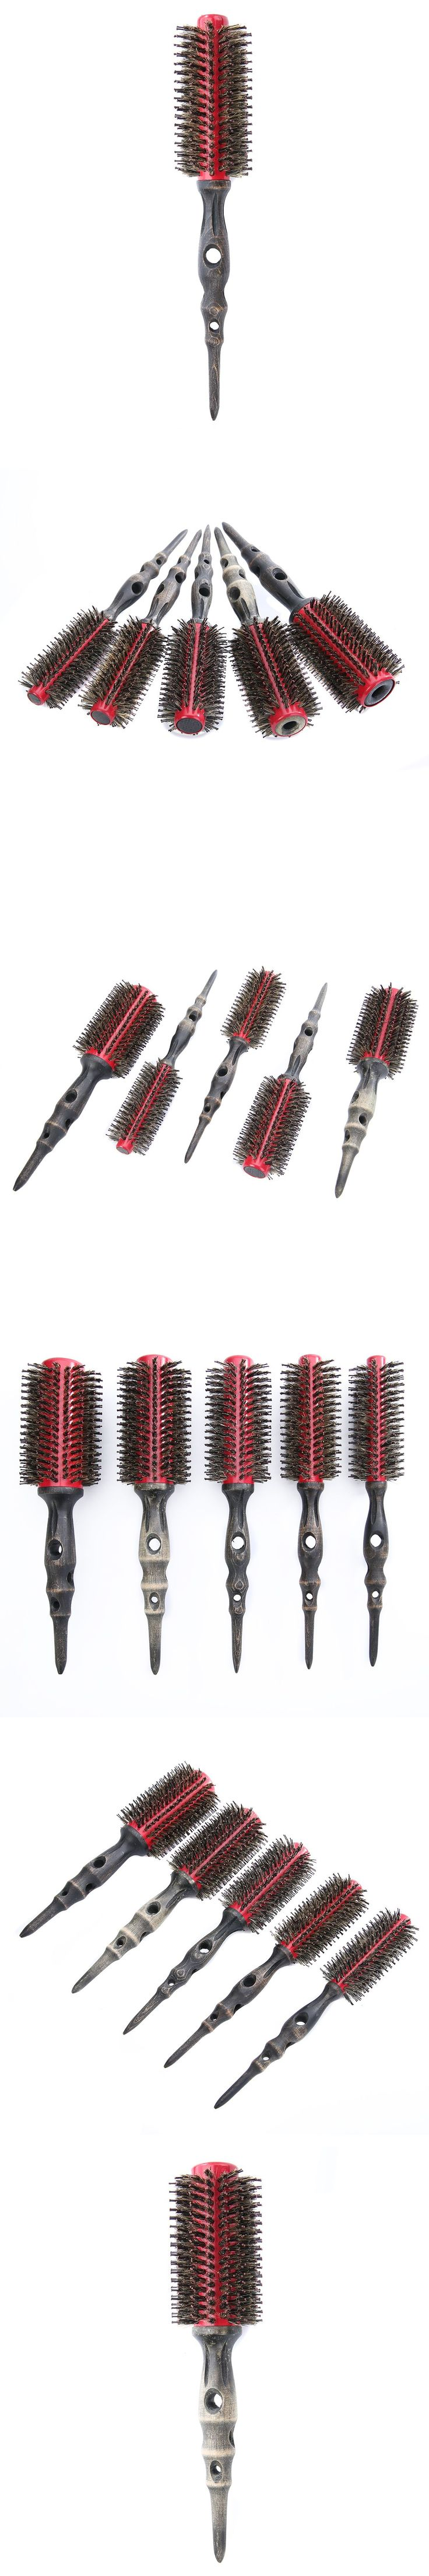 Mayitr 5pcs/Set Round Bristle Comb Curly Hair Round Bristles hair Brush Hairdressing Tool Wood Handle